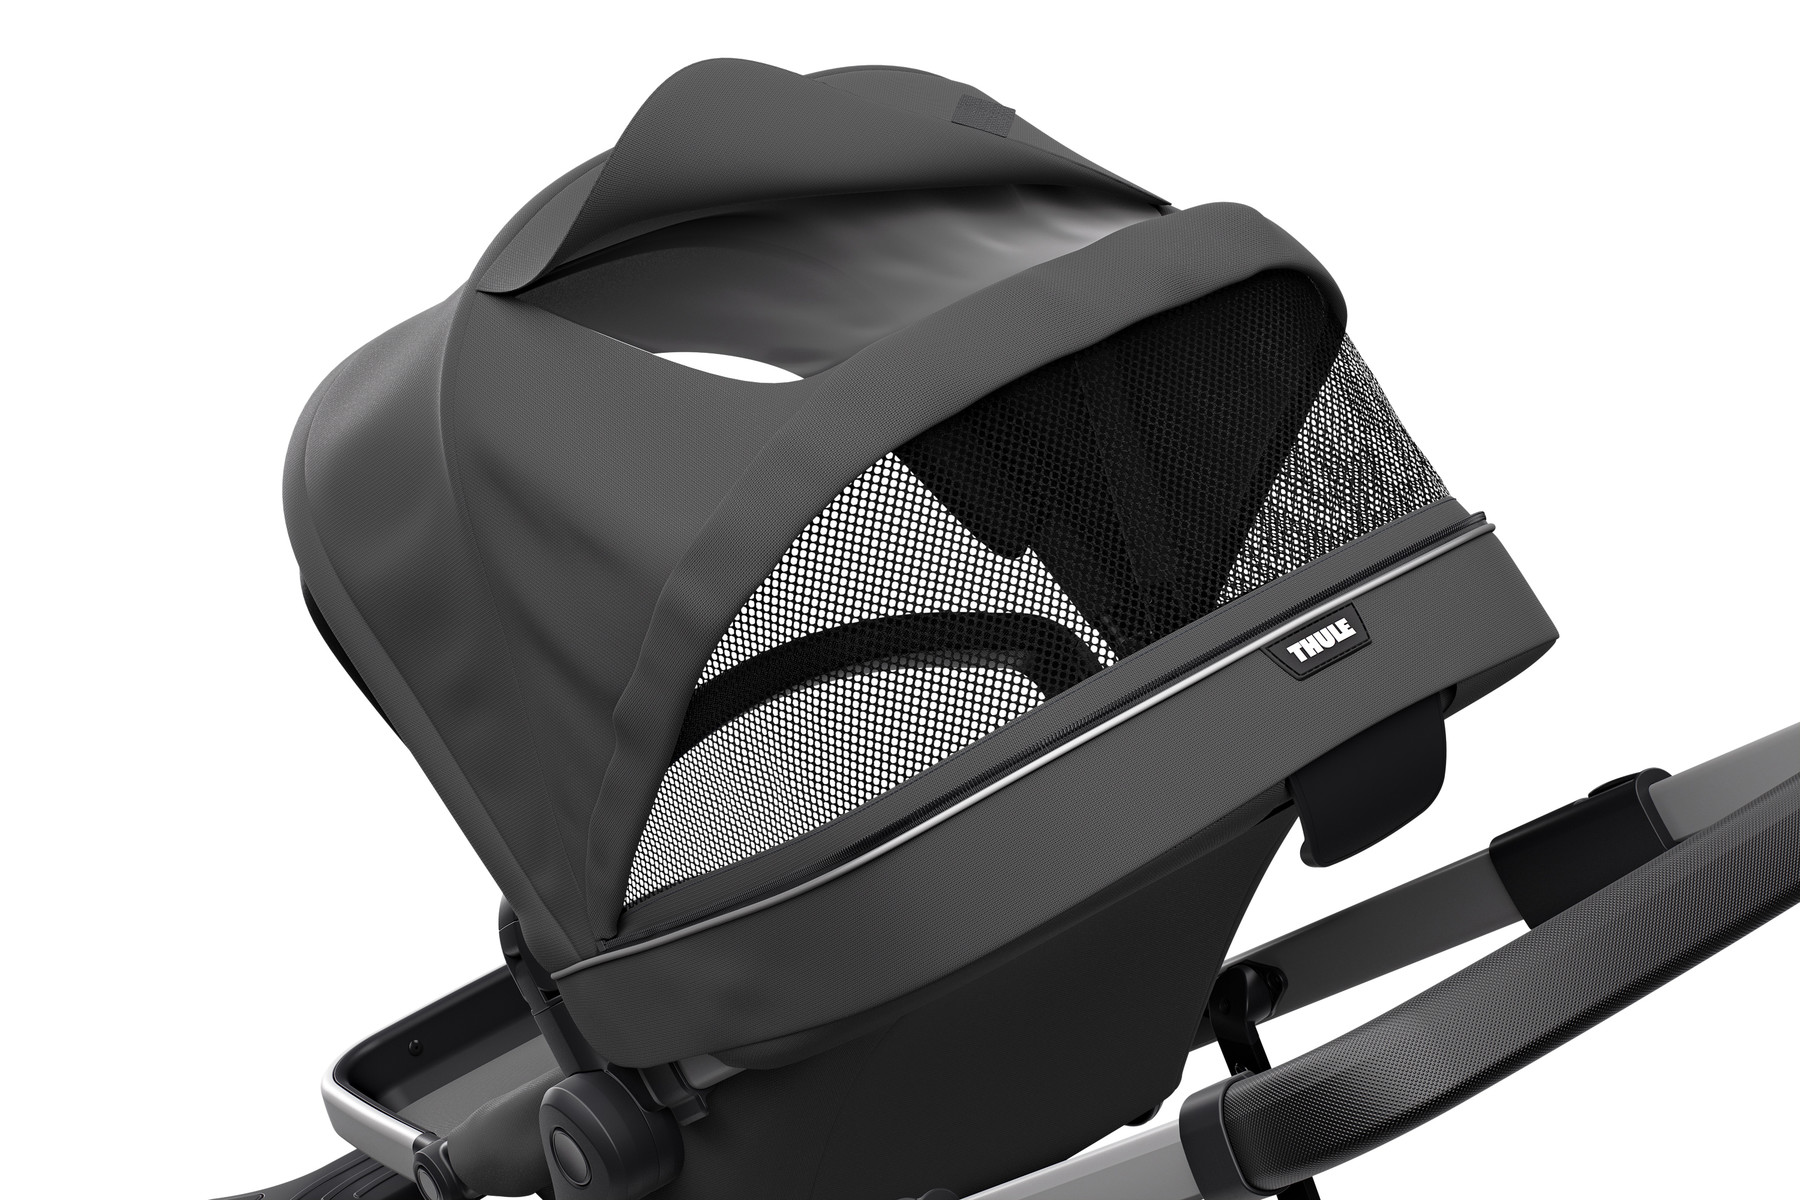 Thule Sleek Adjustable Canopy ShadowGrey